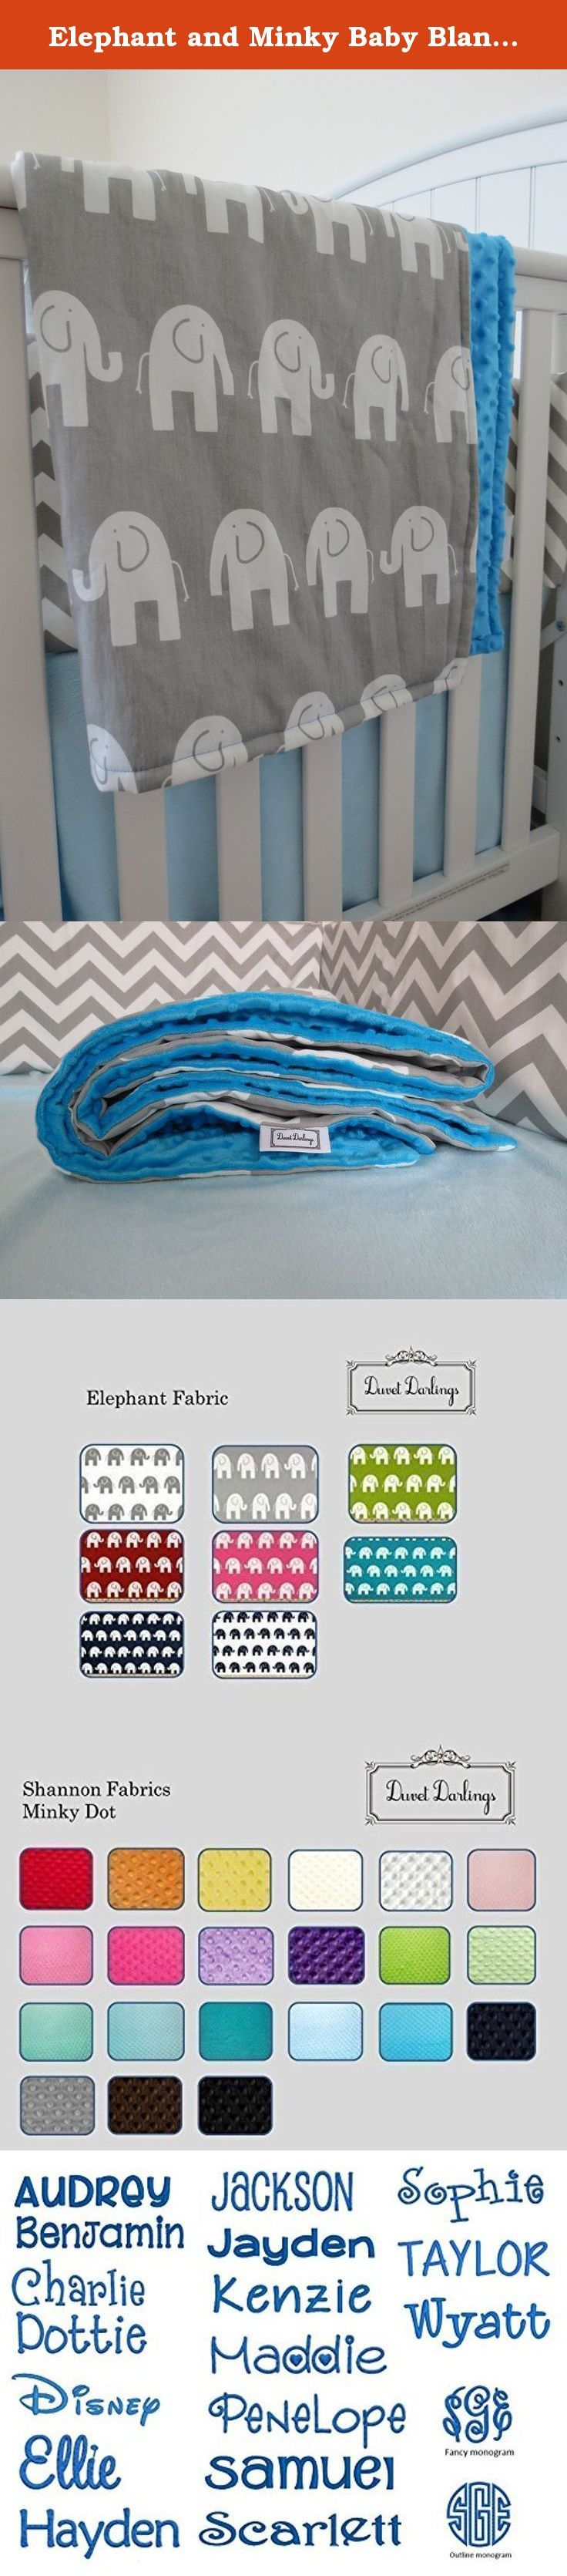 Elephant and Minky Baby Blanket, Toddler blanket, Lovey blanket, lovie, lovee, baby blanket, elephant baby blanket. CUSTOM ELEPHANT and MINKY BABY BLANKET Keep your darling one warm and cozy in this fashionable elephant and minky baby blanket. Blankets are crafted with quality fabrics that wash with ease and are designed to be on the go from car seat to stroller to crib. The blanket top is made with elephant fabric that is 100% cotton, décor weight (medium-heavy), designer print fabric...